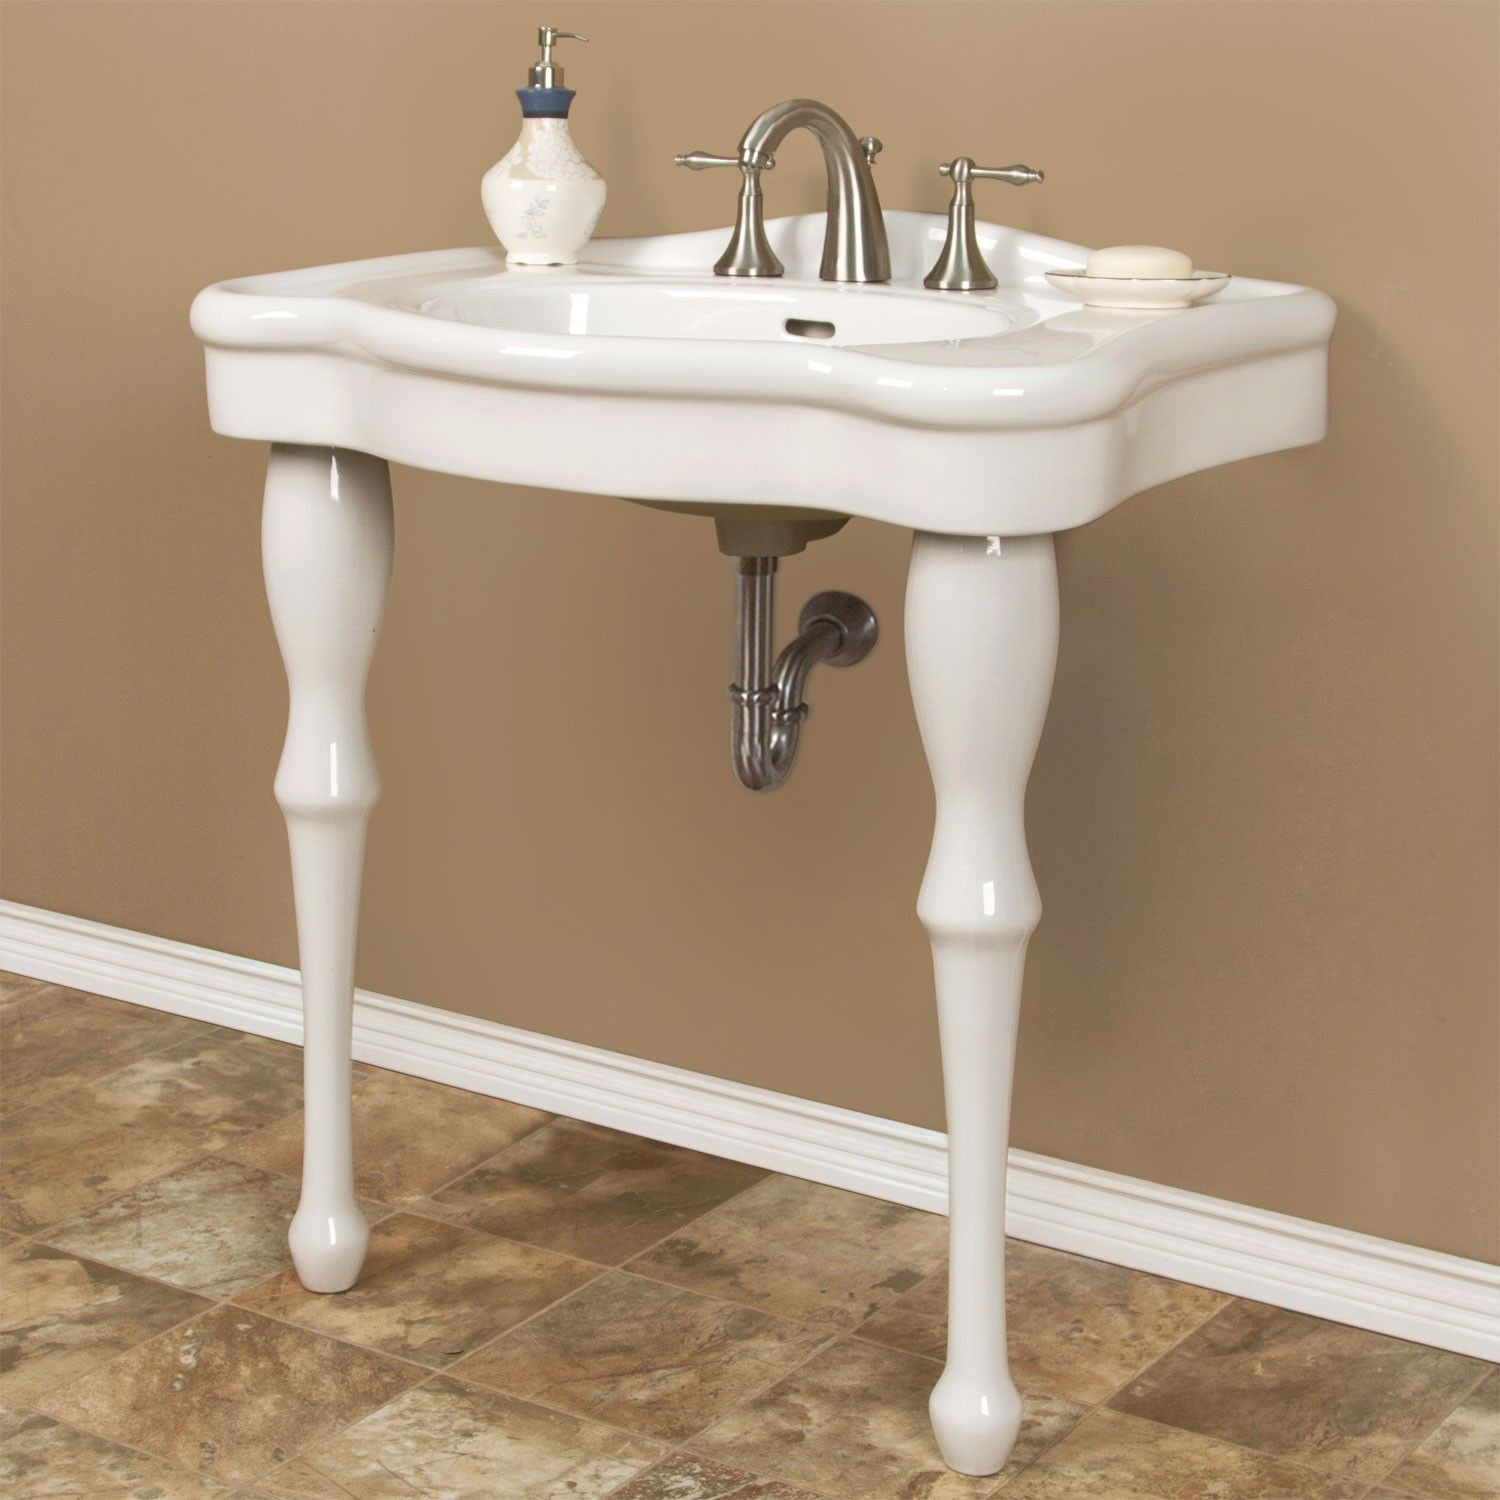 console sink for small bathroom bathroom sink dreamy person new console sinks for small 22970